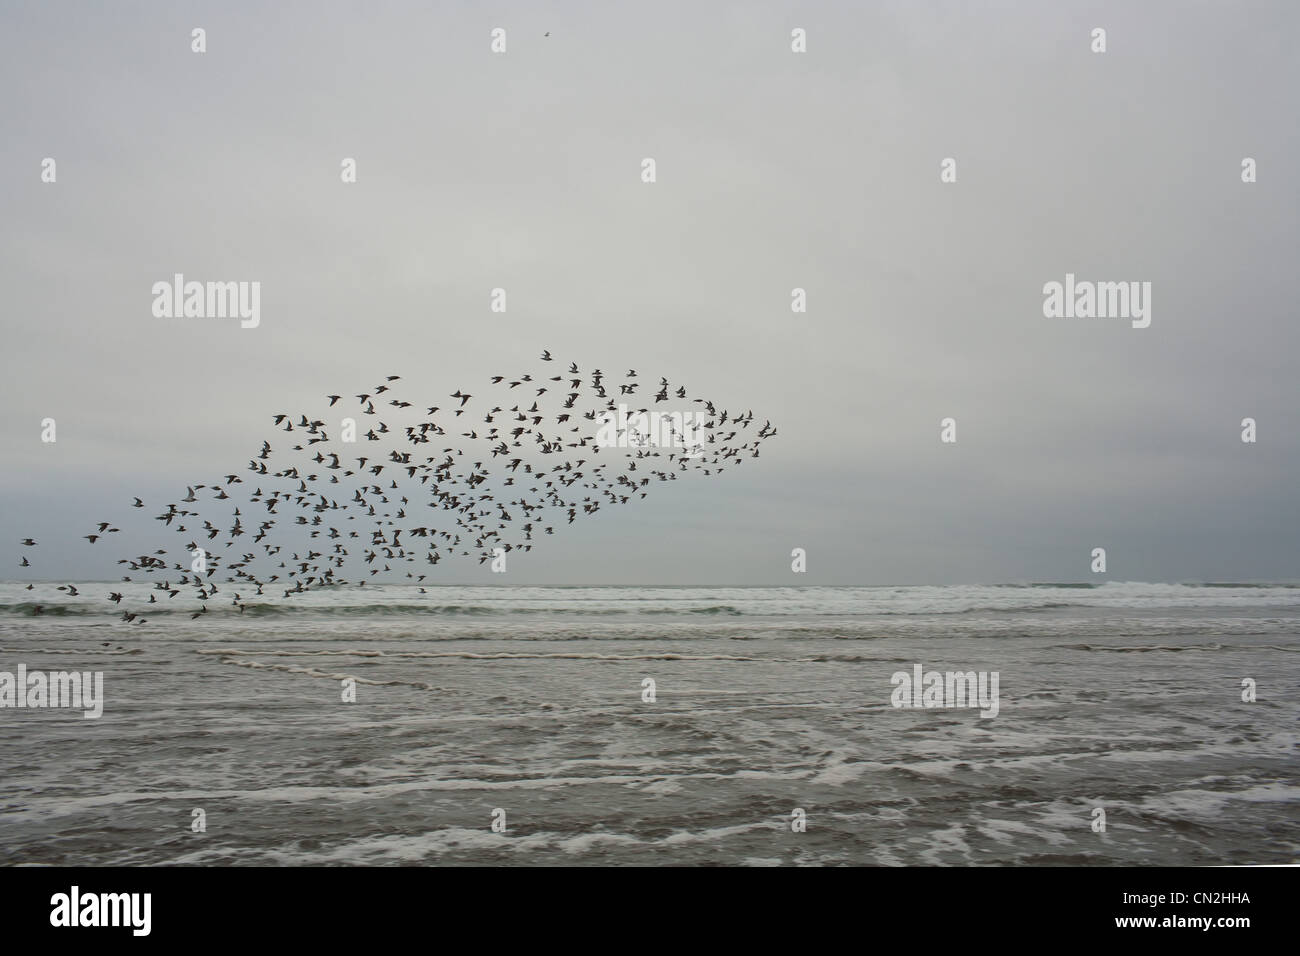 Flock of birds flying over water - Stock Image